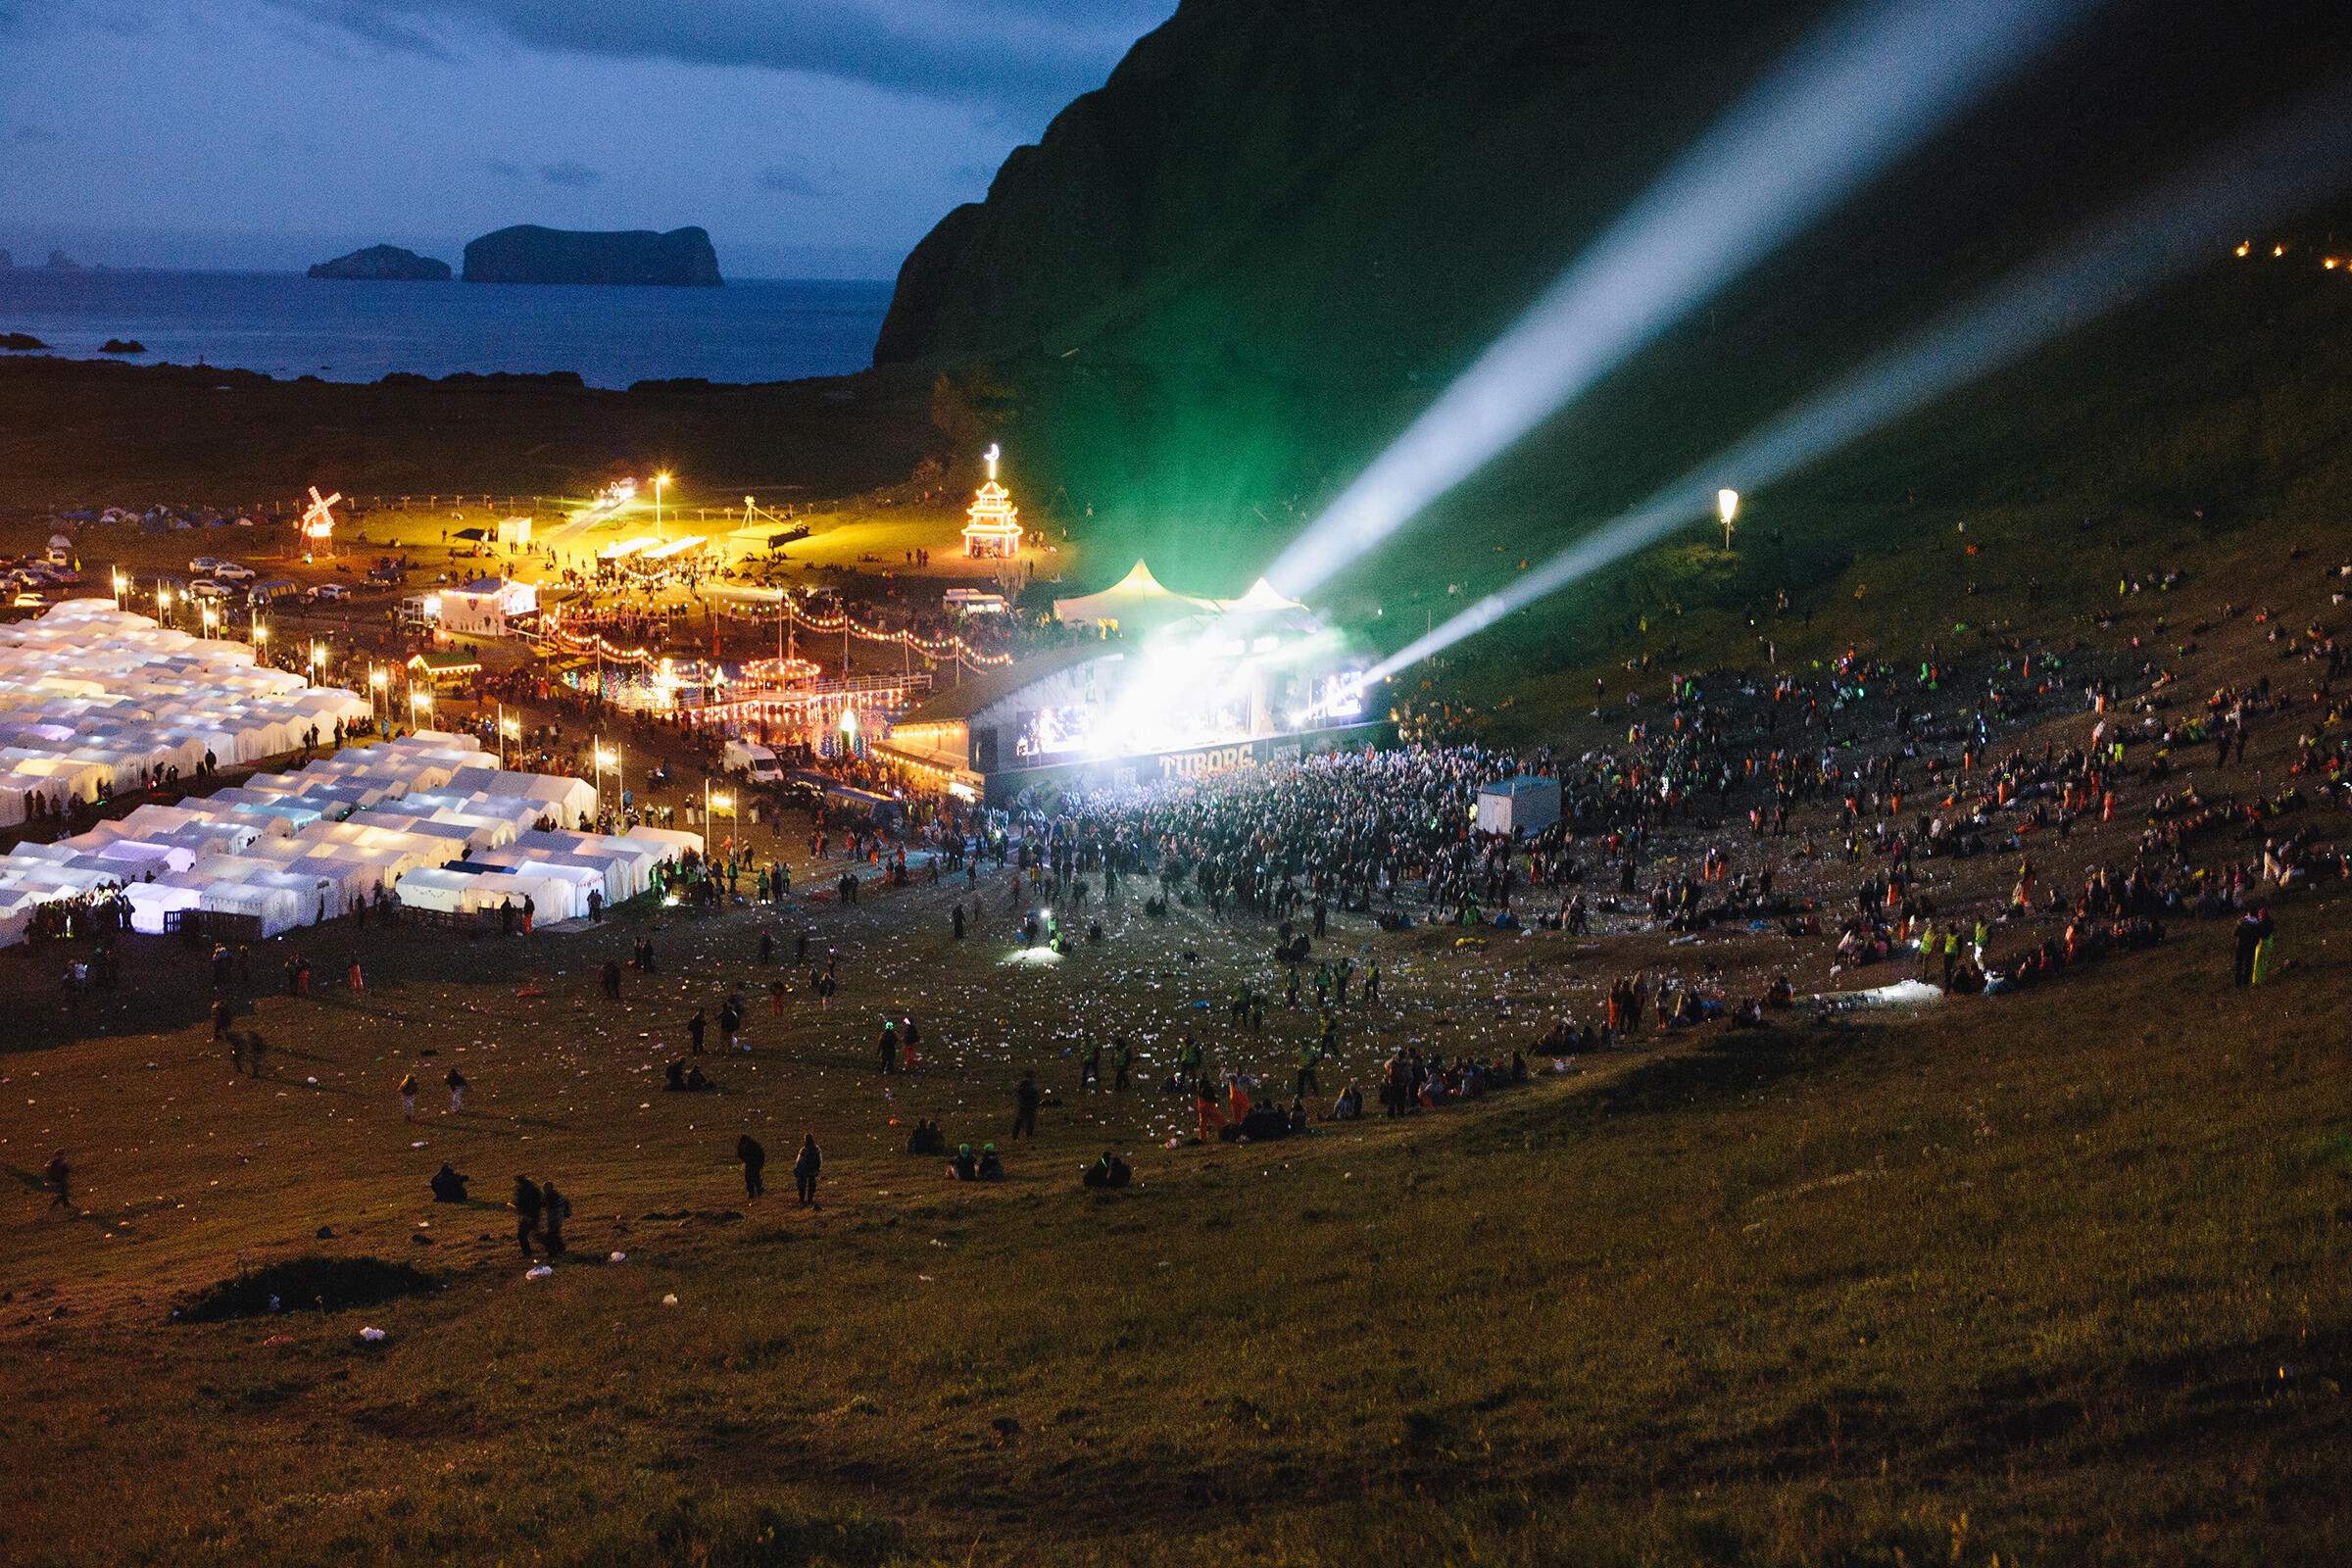 Festival activities include singing, dancing, and drinking on the mountainside. Tristan Spinski